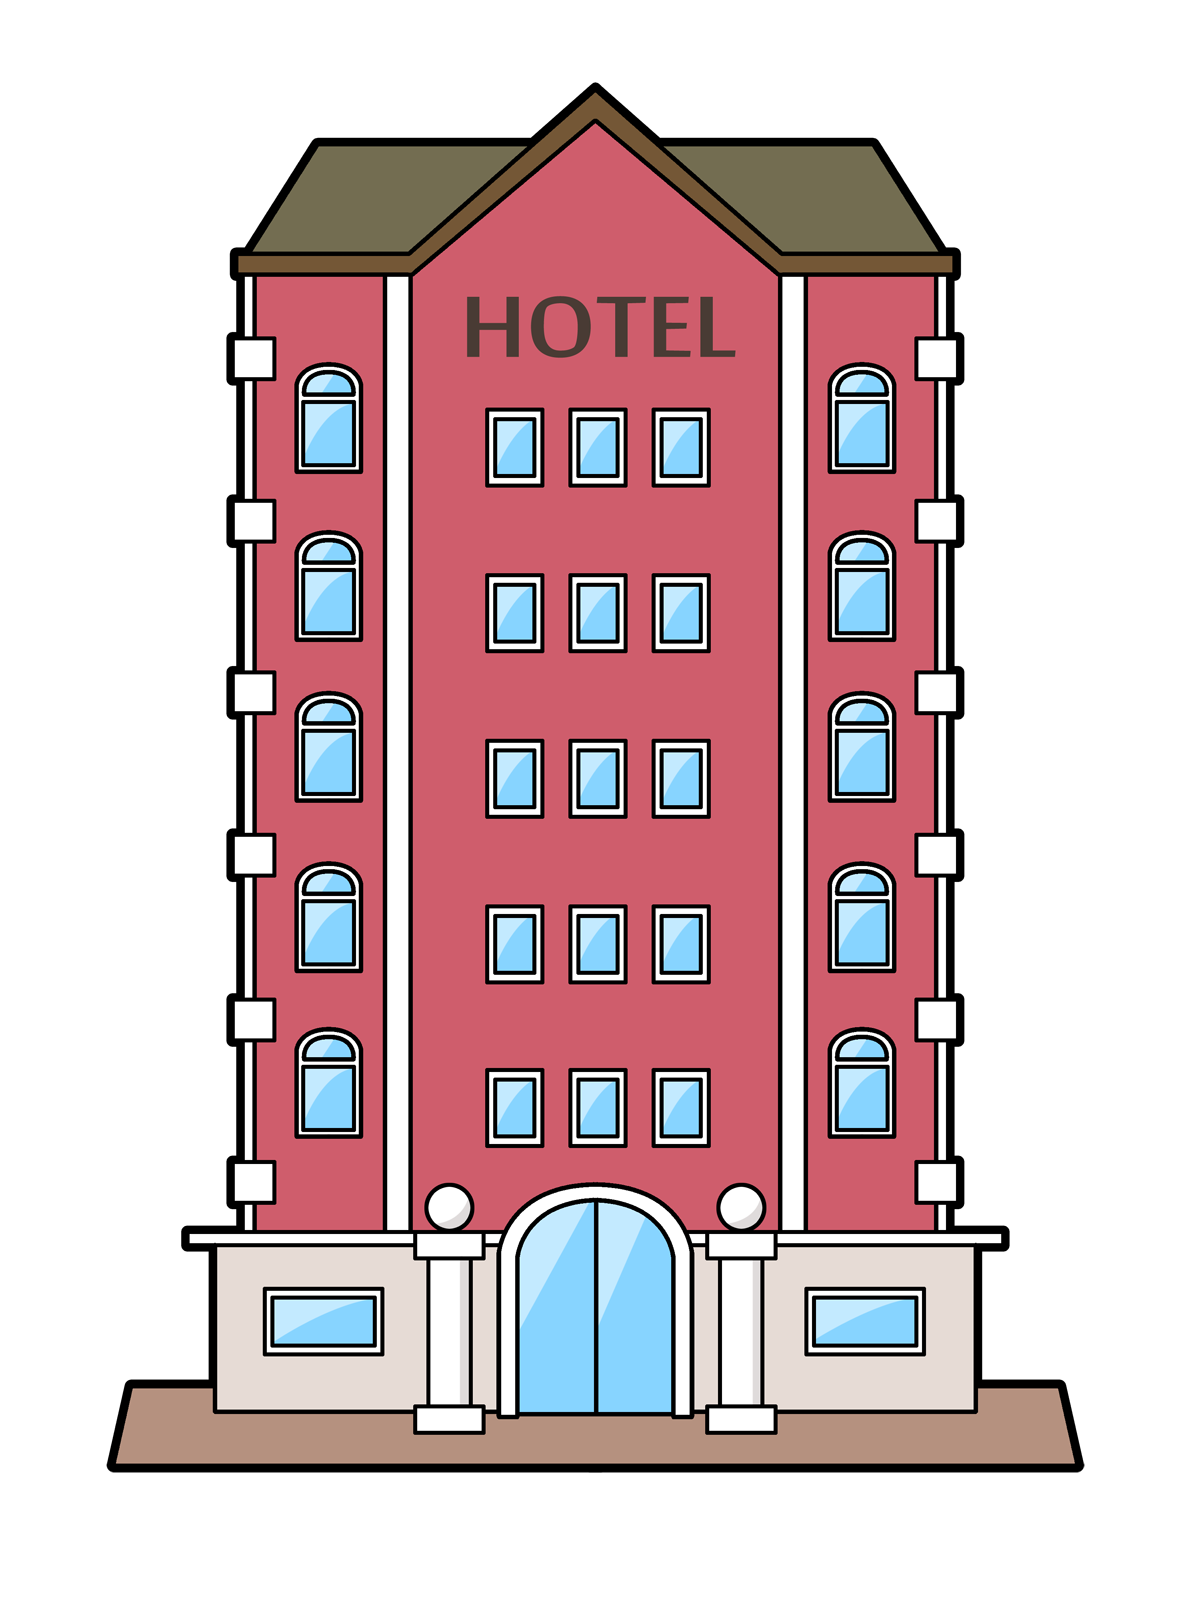 Hotel clipart #11, Download drawings